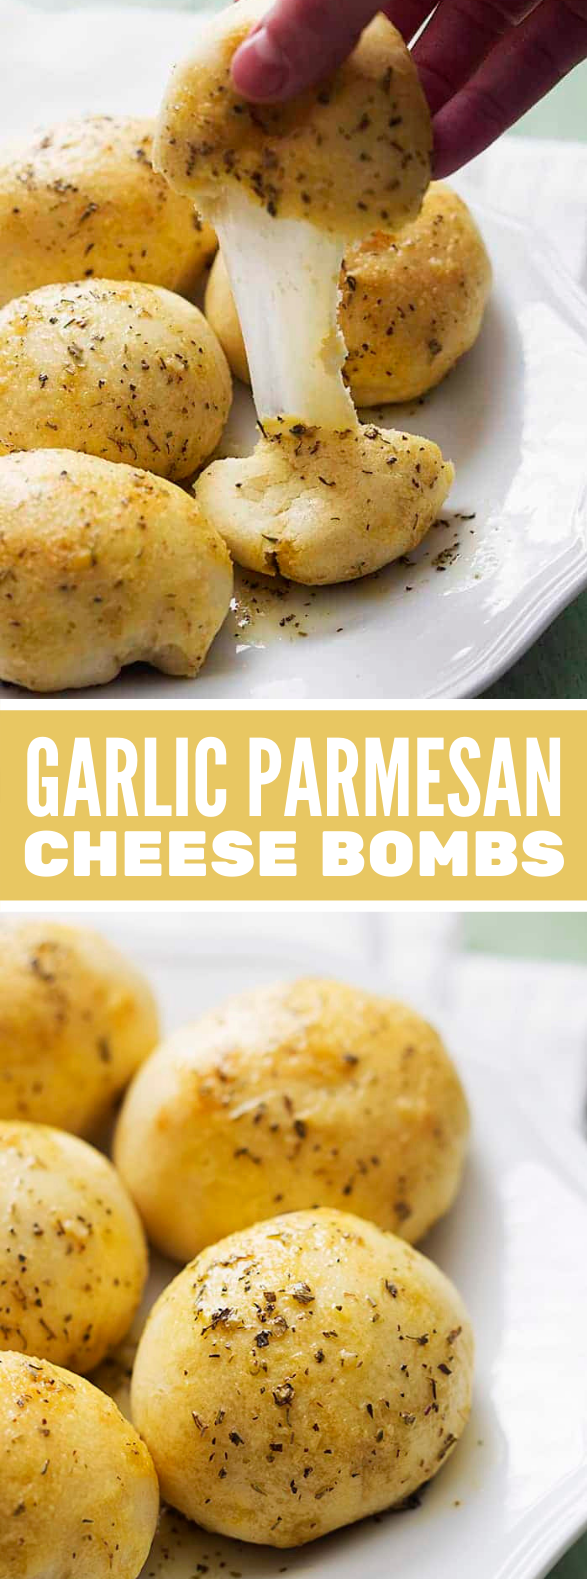 GARLIC PARMESAN CHEESE BOMBS #lunch #dinner